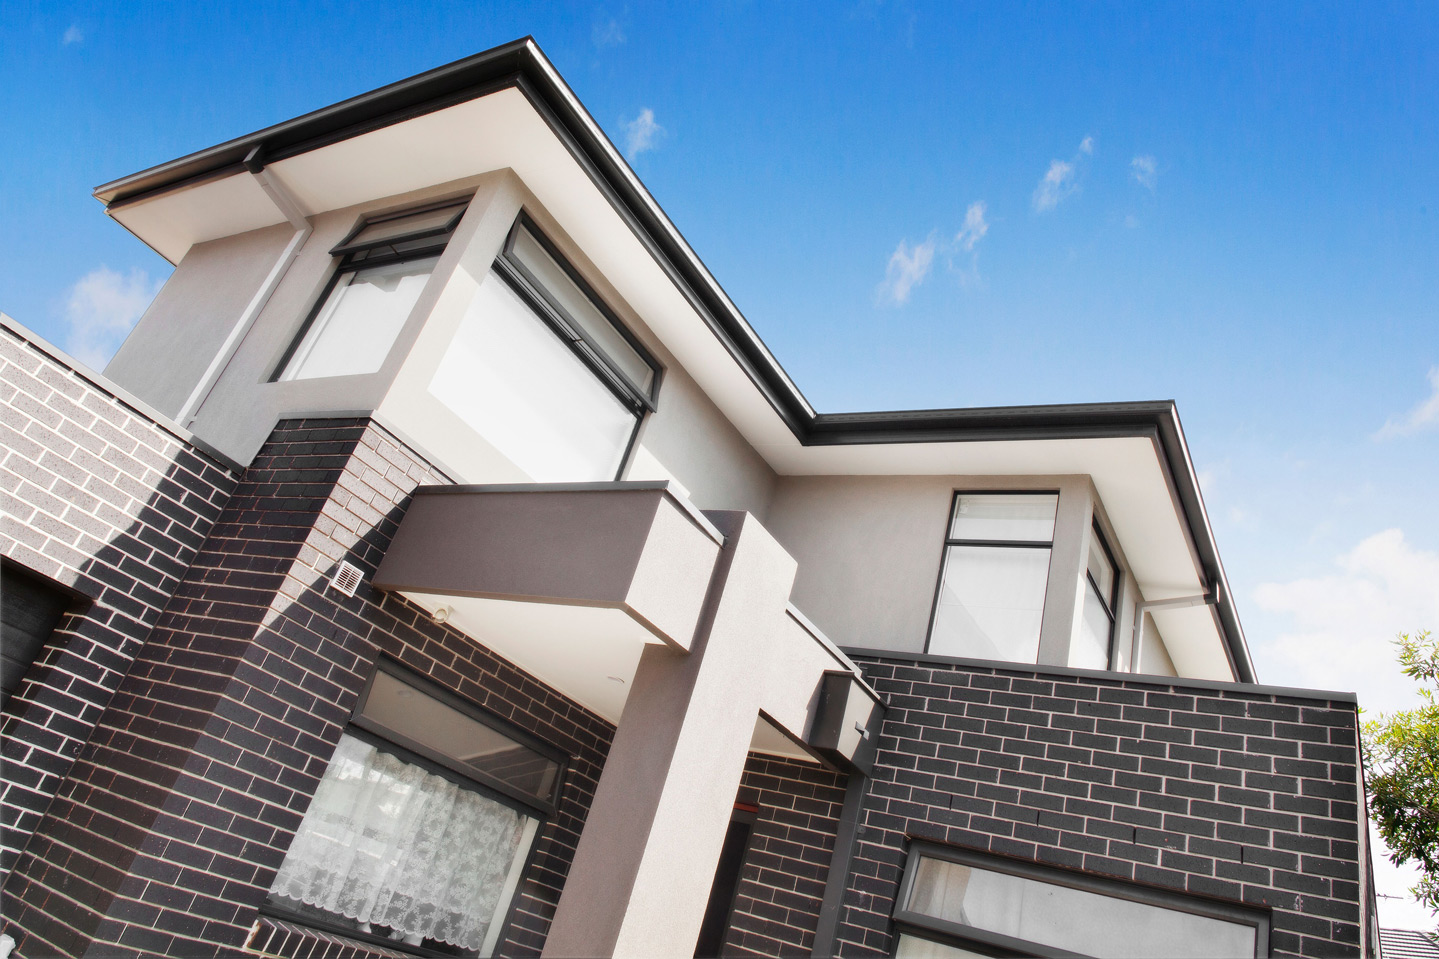 8 Horfield Ave Box Hill North - Box Hill townhouse development plans